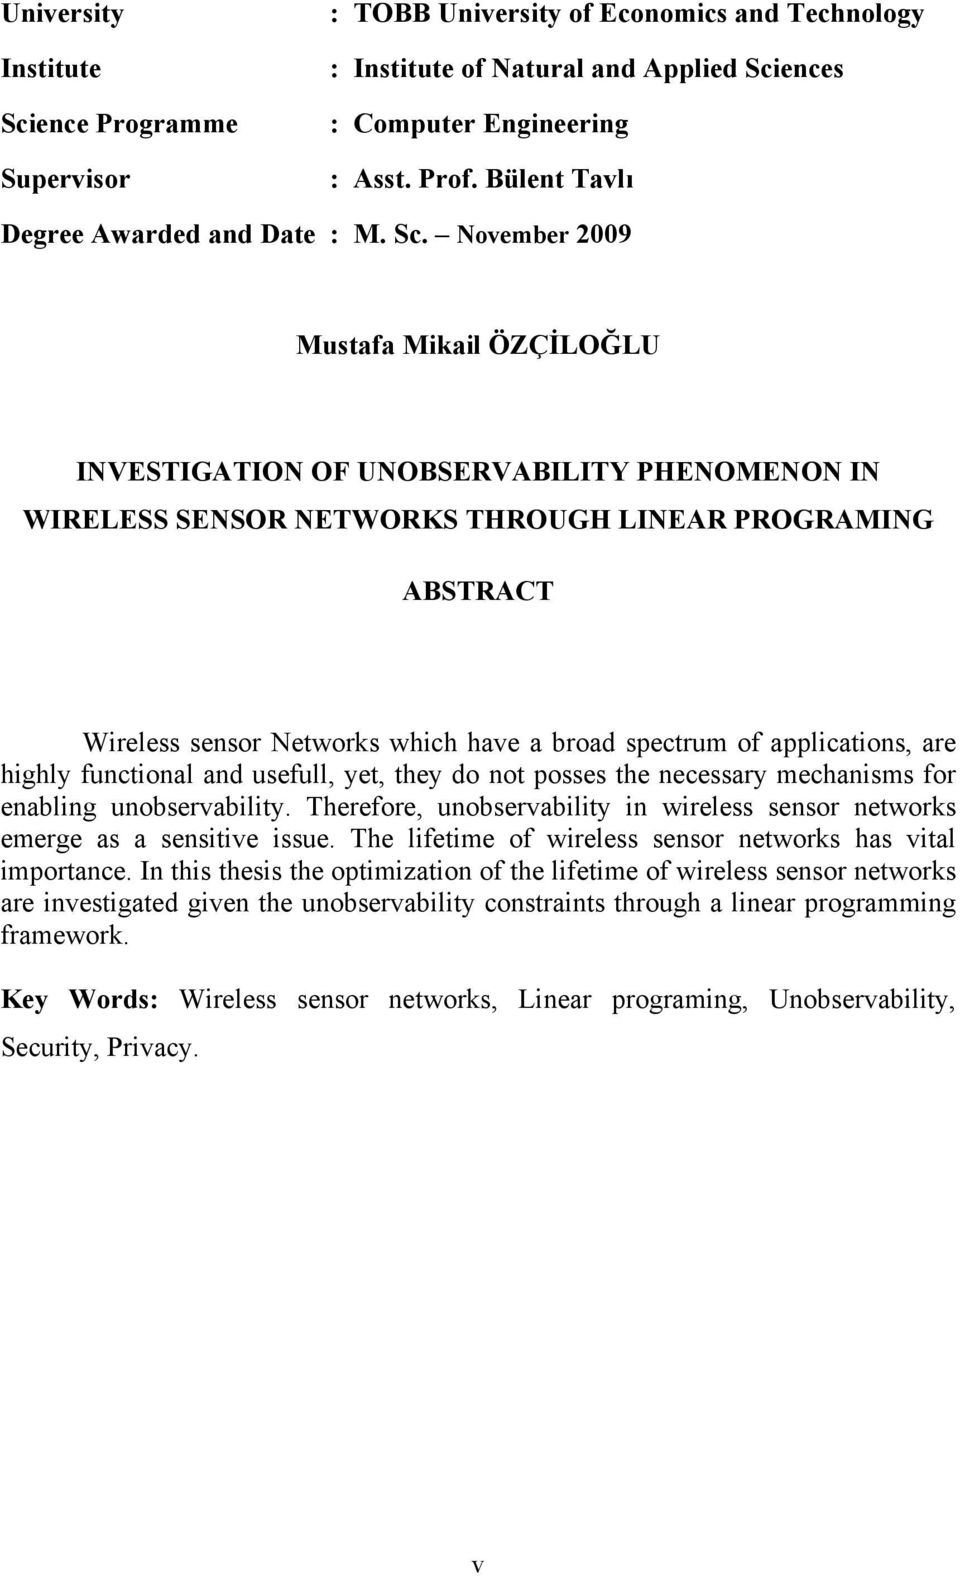 November 2009 Mustafa Mikail ÖZÇİLOĞLU INVESTIGATION OF UNOBSERVABILITY PHENOMENON IN WIRELESS SENSOR NETWORKS THROUGH LINEAR PROGRAMING ABSTRACT Wireless sensor Networks which have a broad spectrum